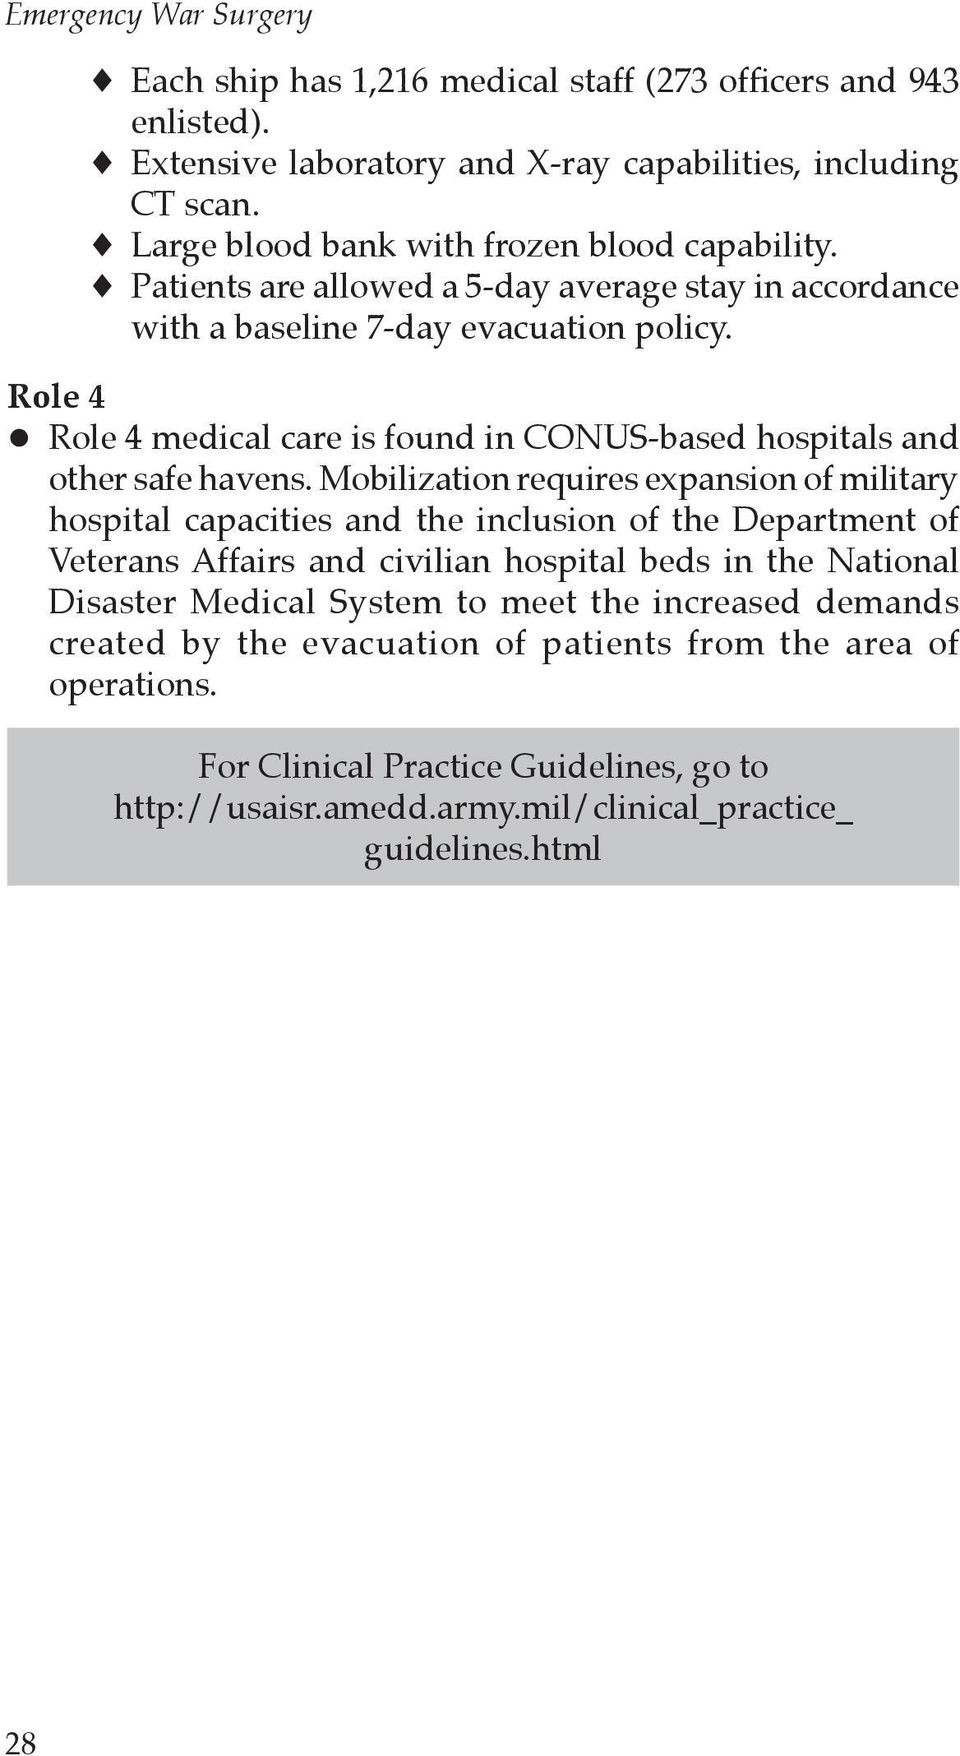 Role 4 Role 4 medical care is found in CONUS-based hospitals and other safe havens.